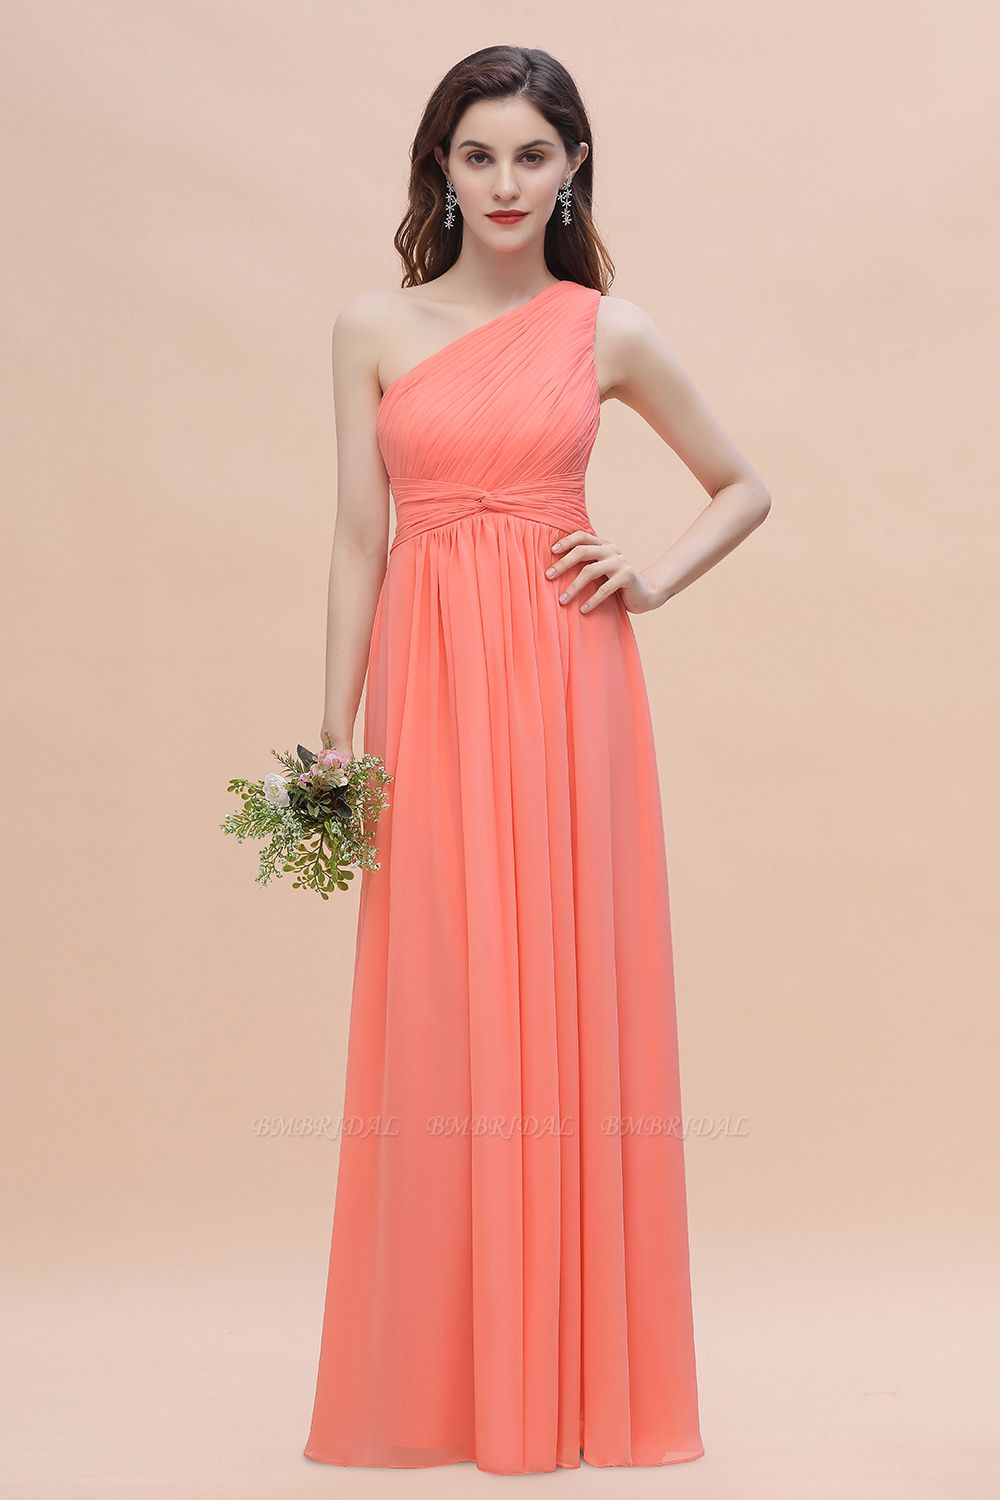 BMbridal Chic One-Shoulder Ruffles Chiffon Coral Bridesmaid Dresses On Sale